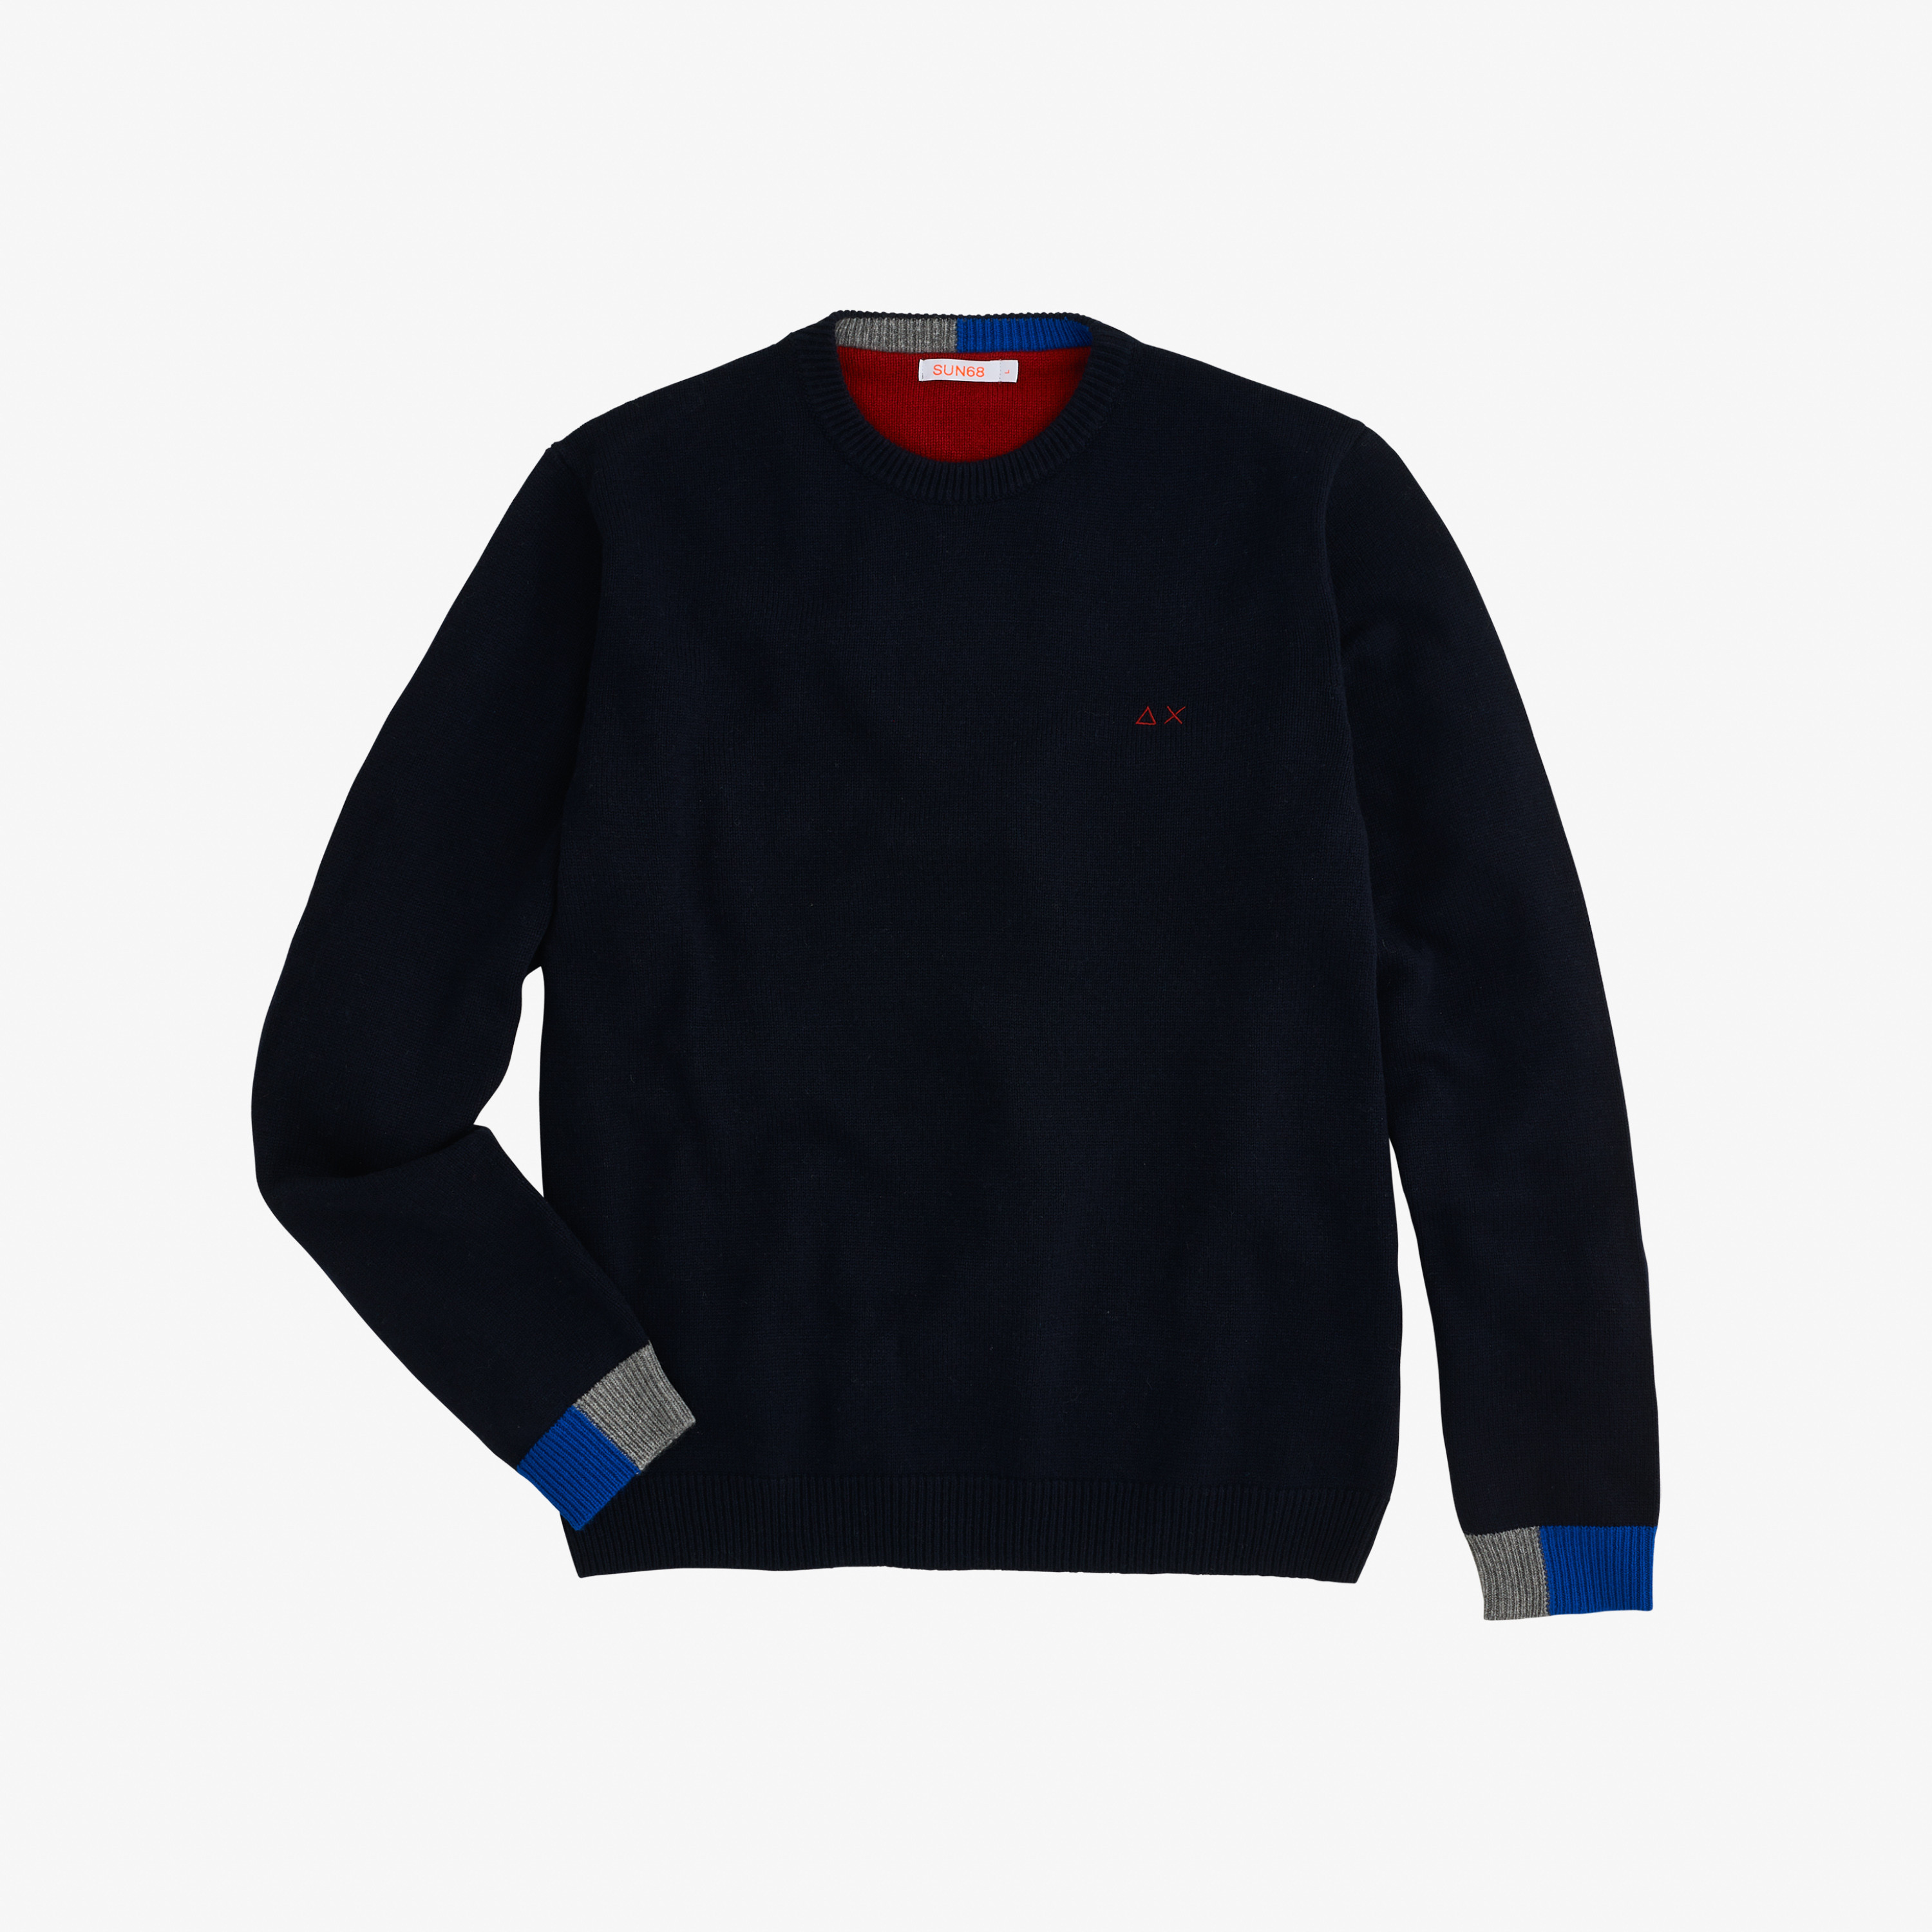 ROUND SOLID COLOR RIB NAVY BLUE